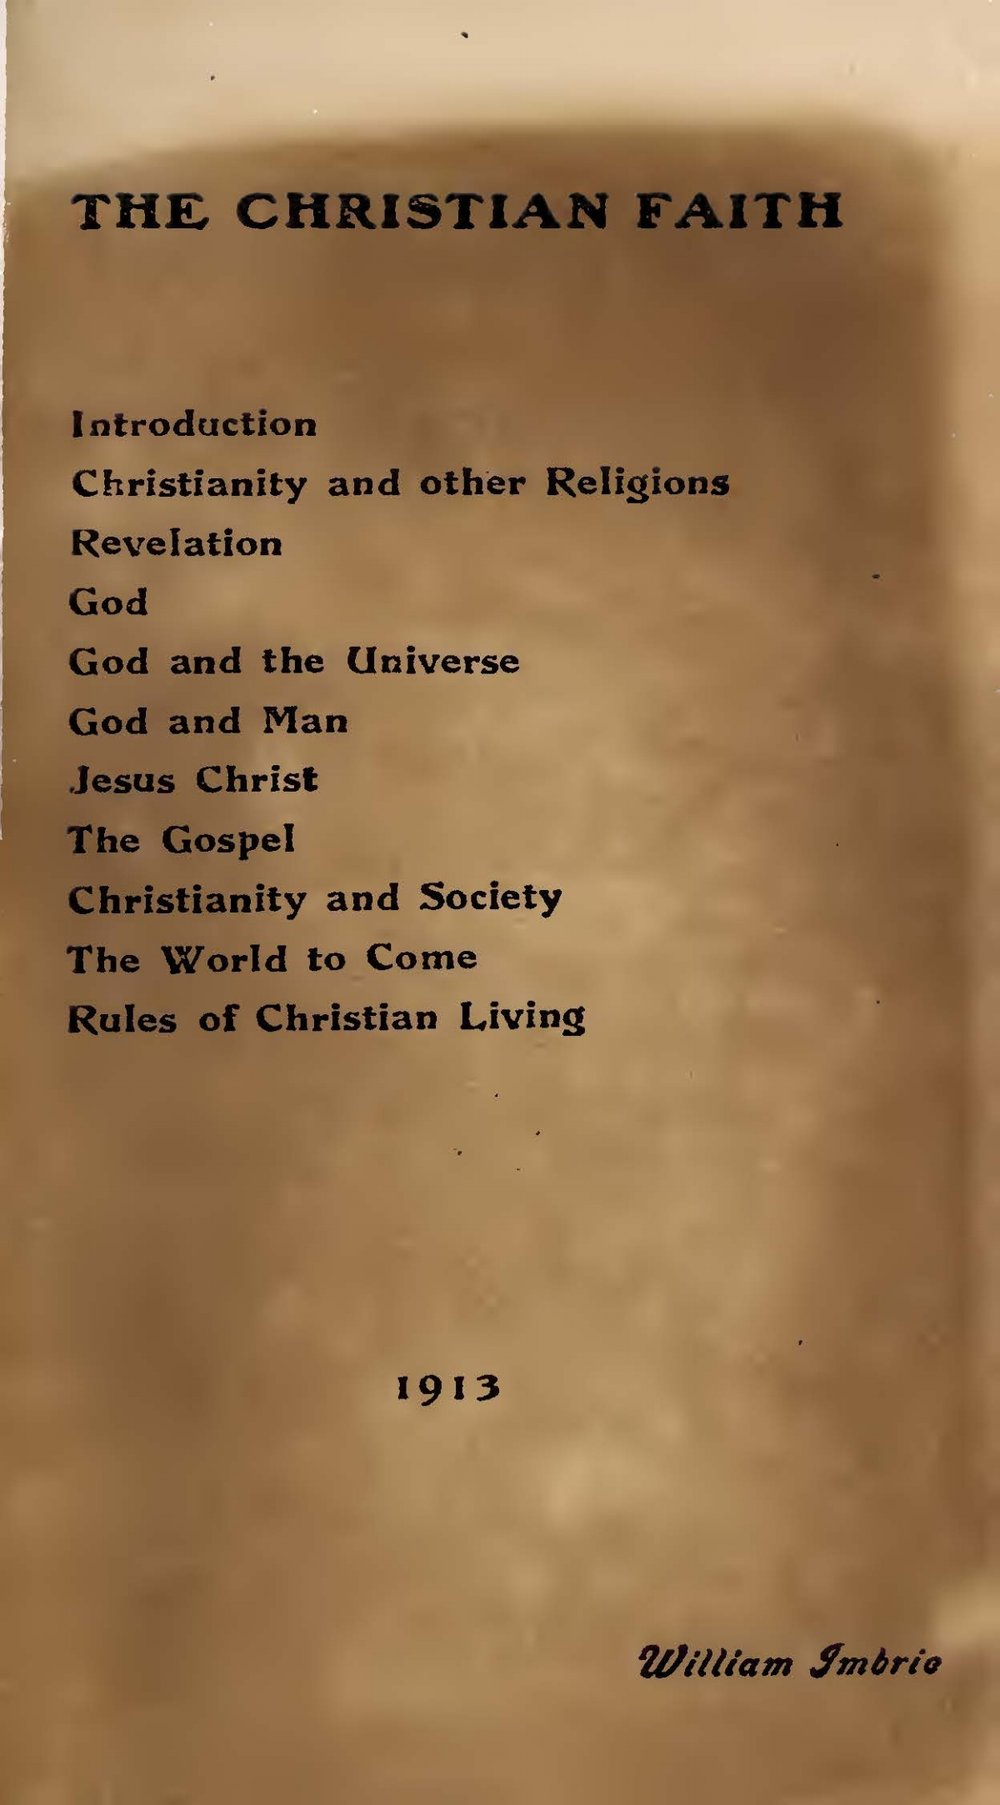 Imbrie, William, The Christian Faith Title Page.jpg